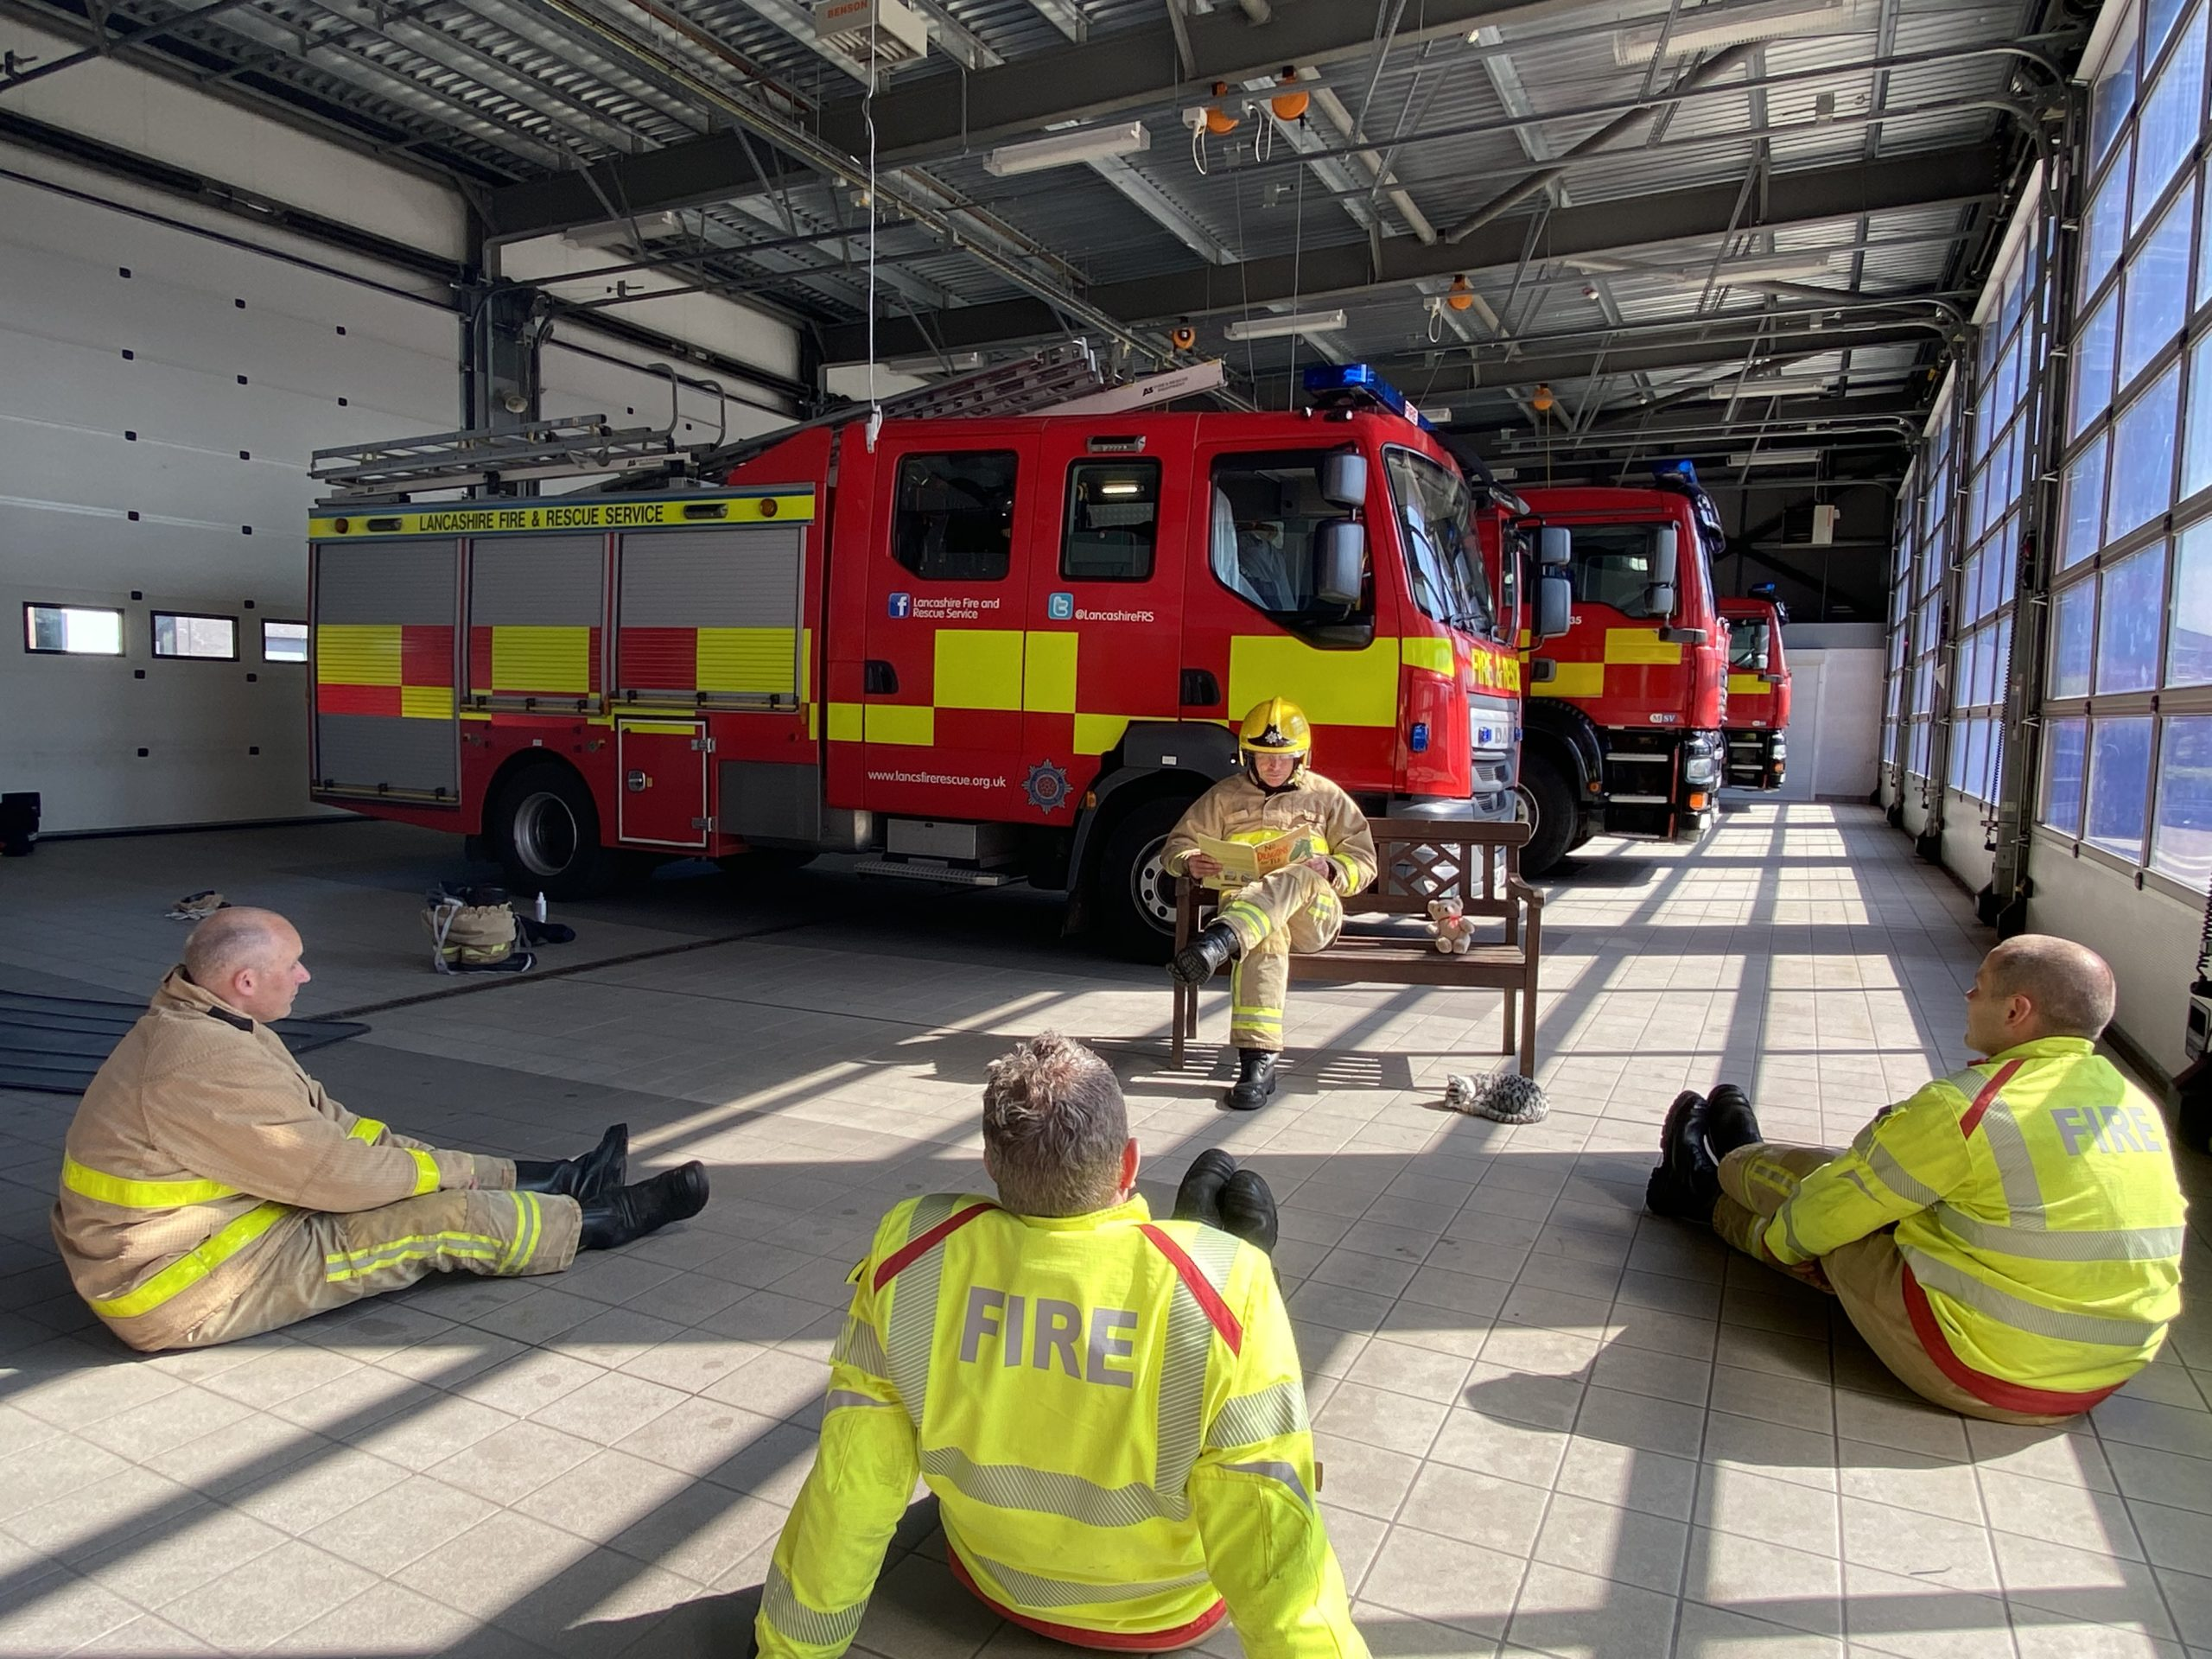 a firefighter hosts a storytime session with his crew at Burnley fire station